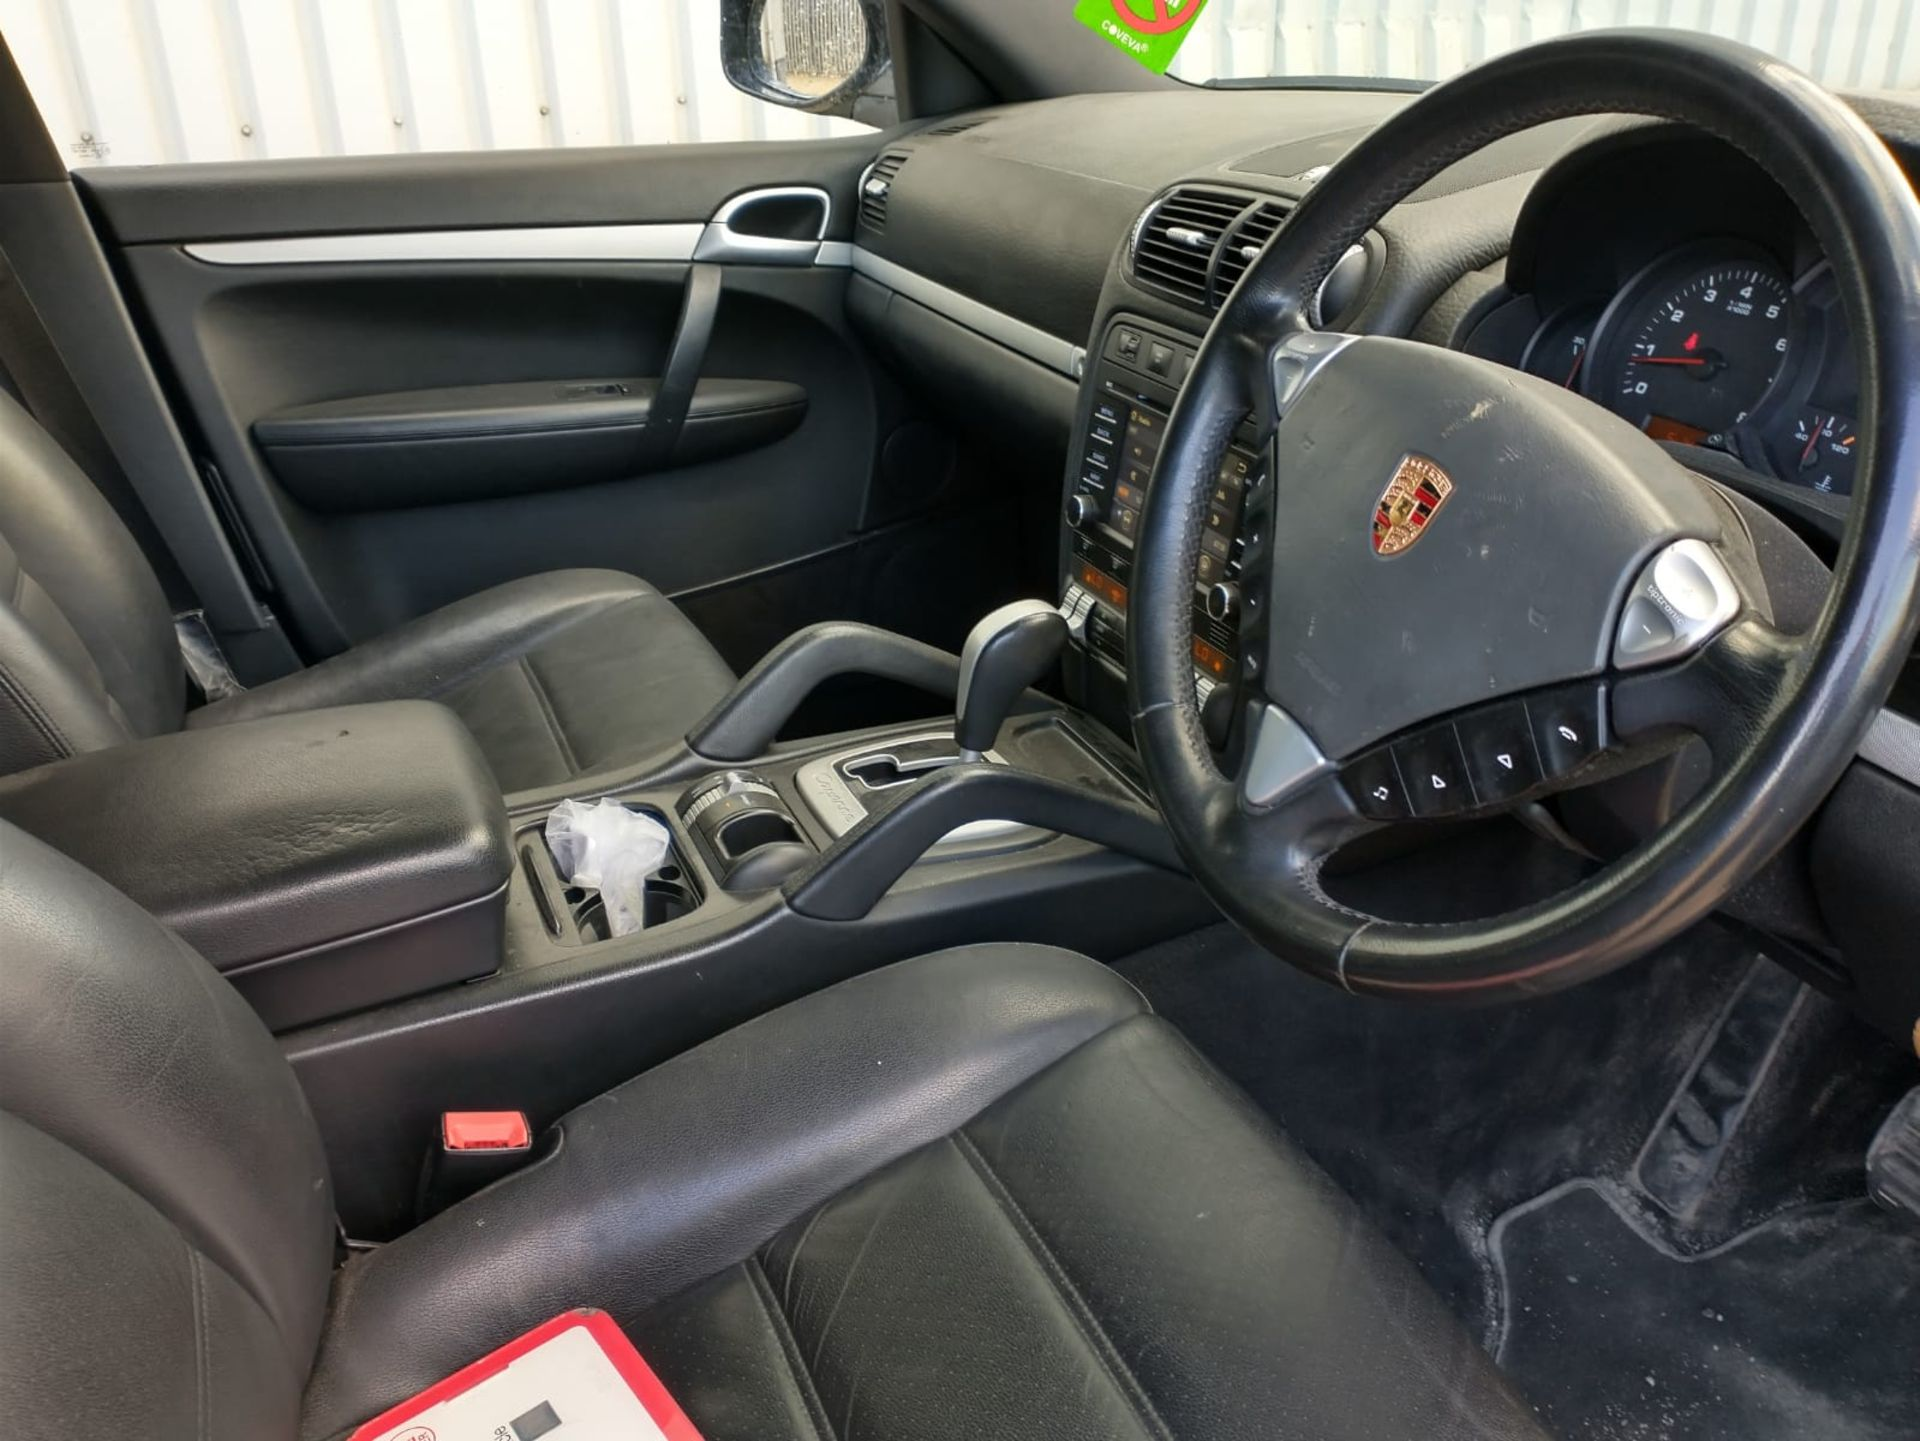 2008 Porsche Cayenne Tiptronic 3.6 5Dr SUV - CL505 - NO VAT ON THE HAMMER - Location: Corby, Northam - Image 4 of 16